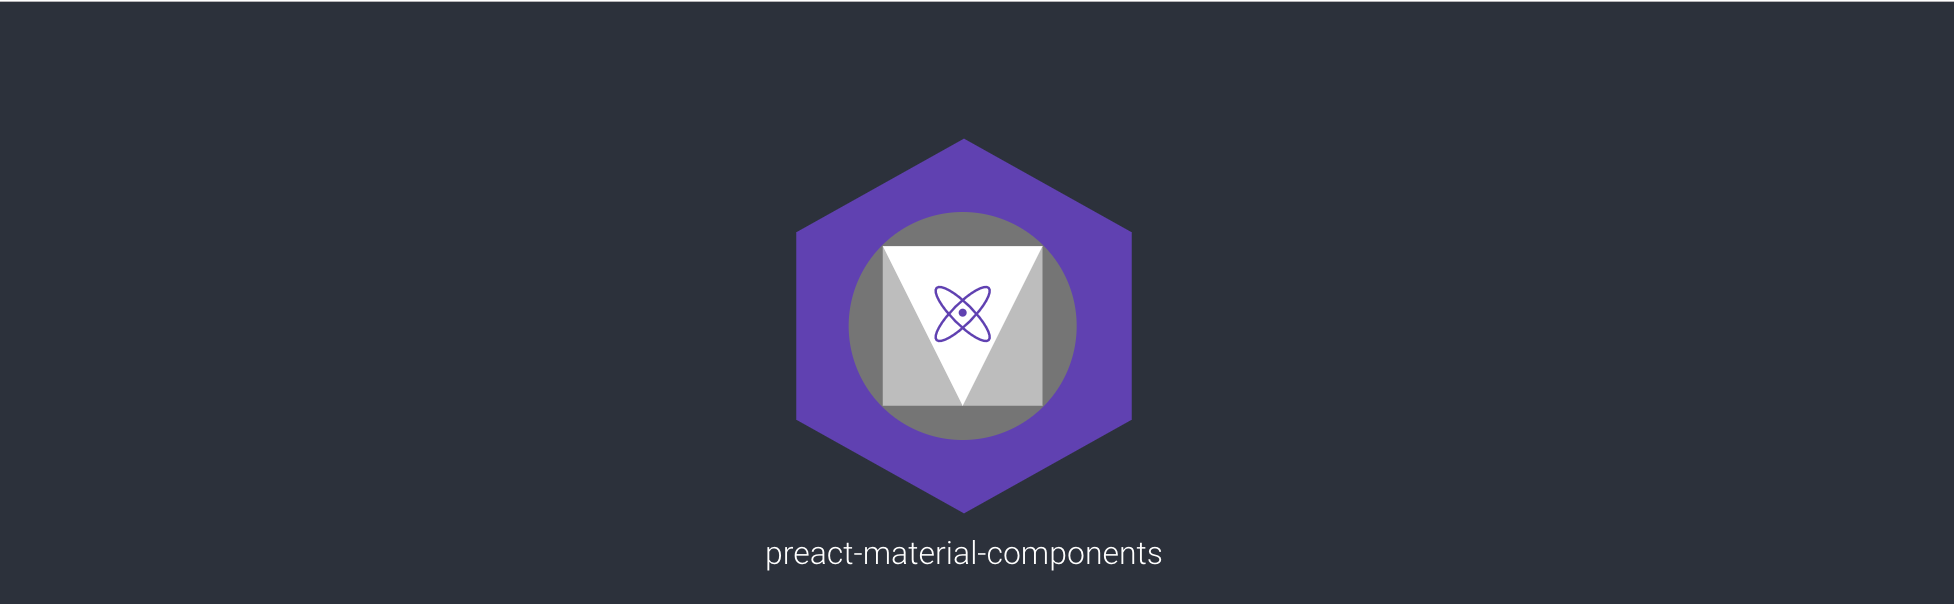 preact-material-components